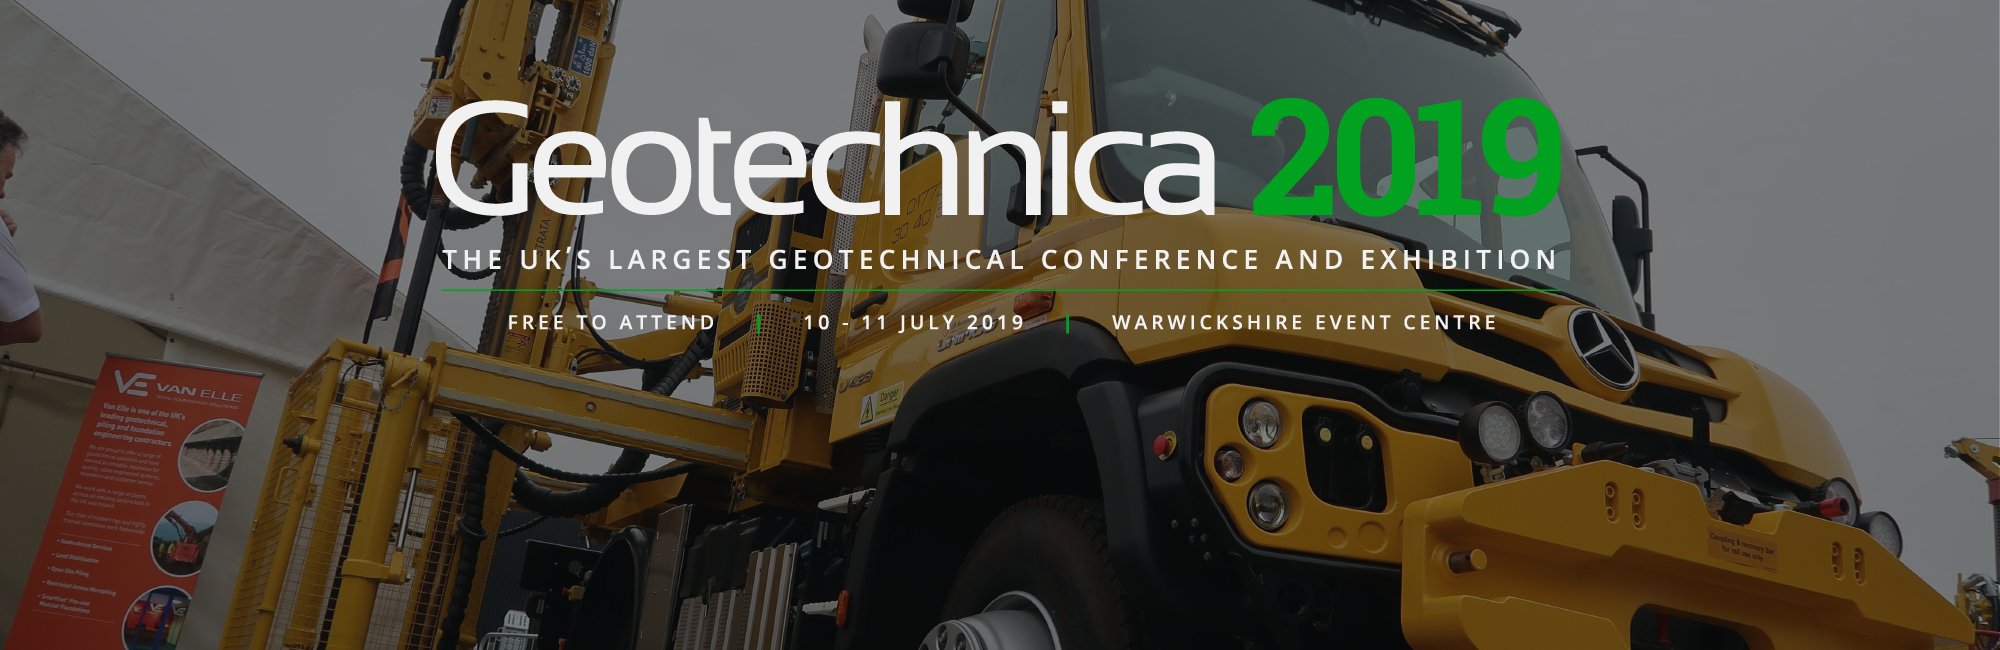 <a href='https://www.equipegroup.com/geotechnica.html' class='sy-caption-green'>Register your attendance</a>